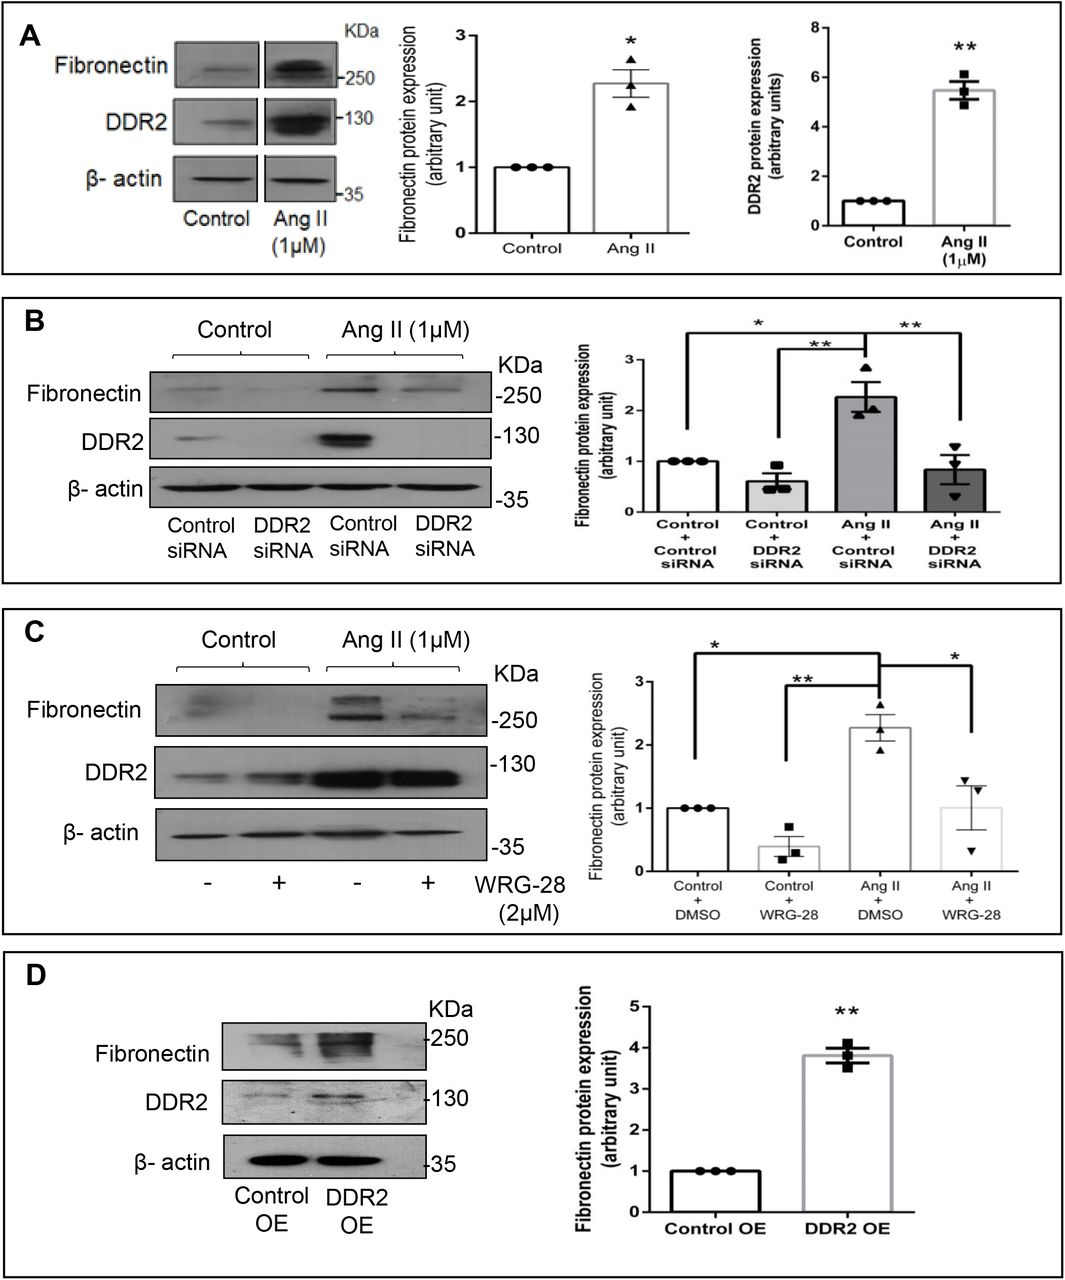 DDR2 mediates Ang II-dependent fibronectin expression in cardiac fibroblasts. (A) Sub-confluent quiescent cultures of cardiac fibroblasts were stimulated with Angiotensin II (Ang II) (1μM). Protein was isolated at 12 h of Ang II treatment and subjected to western blot analysis for detection of fibronectin and DDR2, with β-actin as loading control. *p